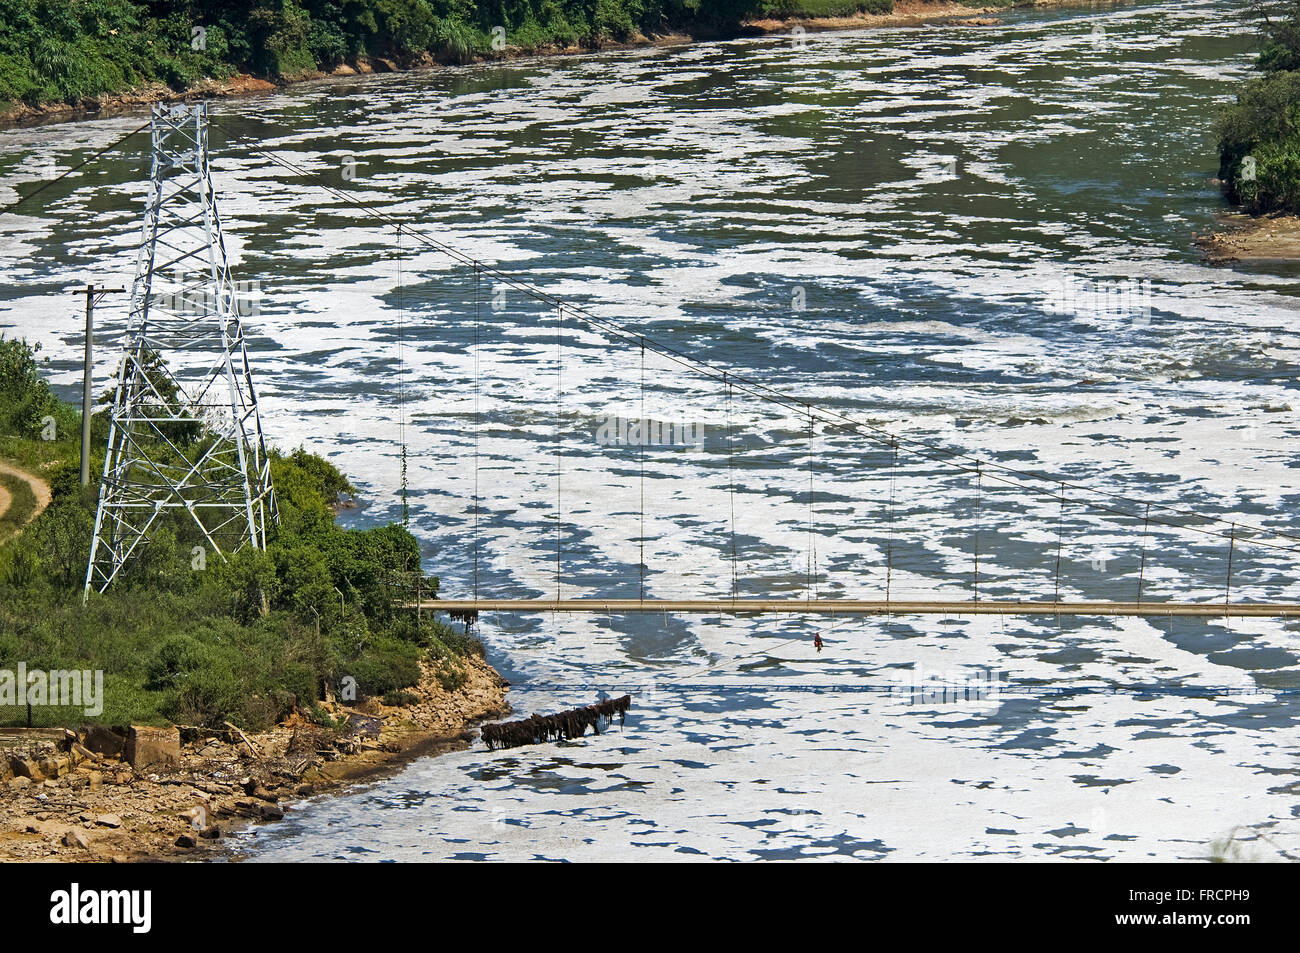 Foam caused by detergent in the Tietê River - Stock Image